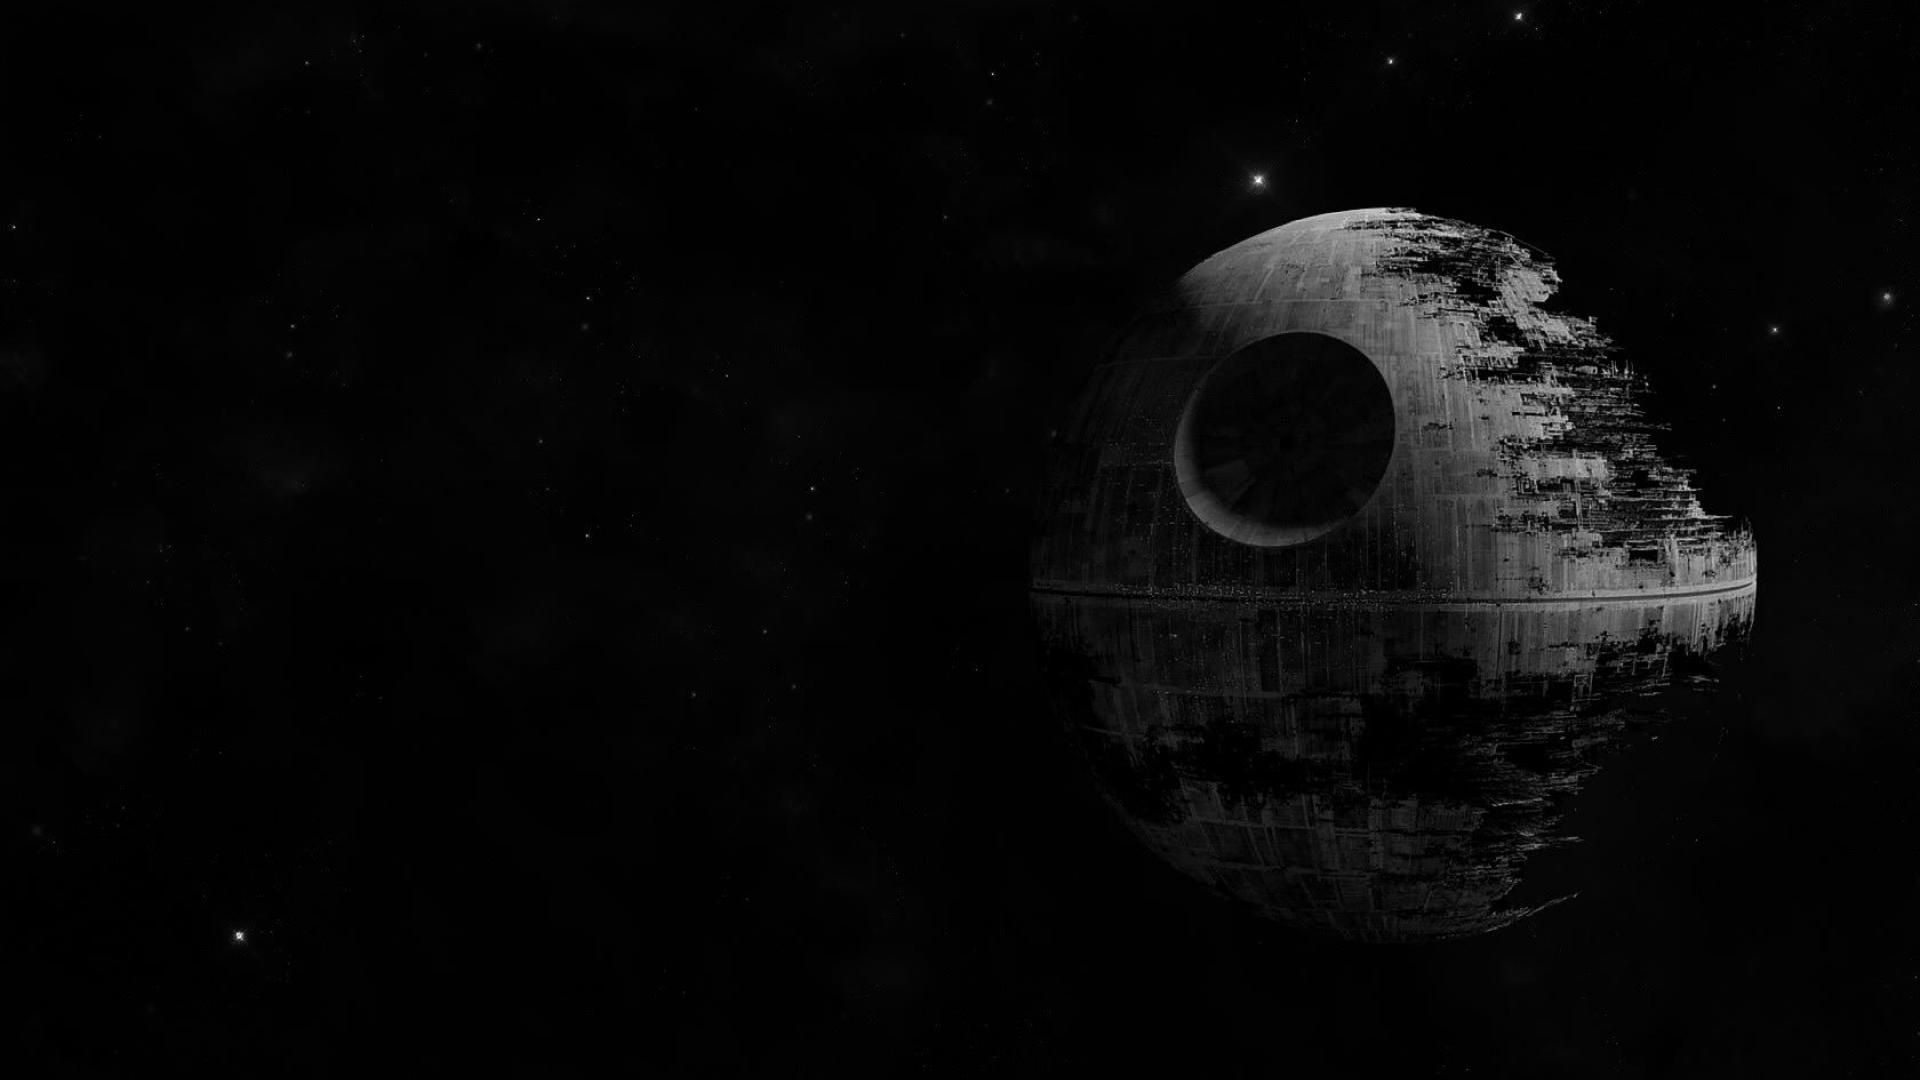 1920x1080 - 1920x1080 HD Wallpapers Star Wars 13